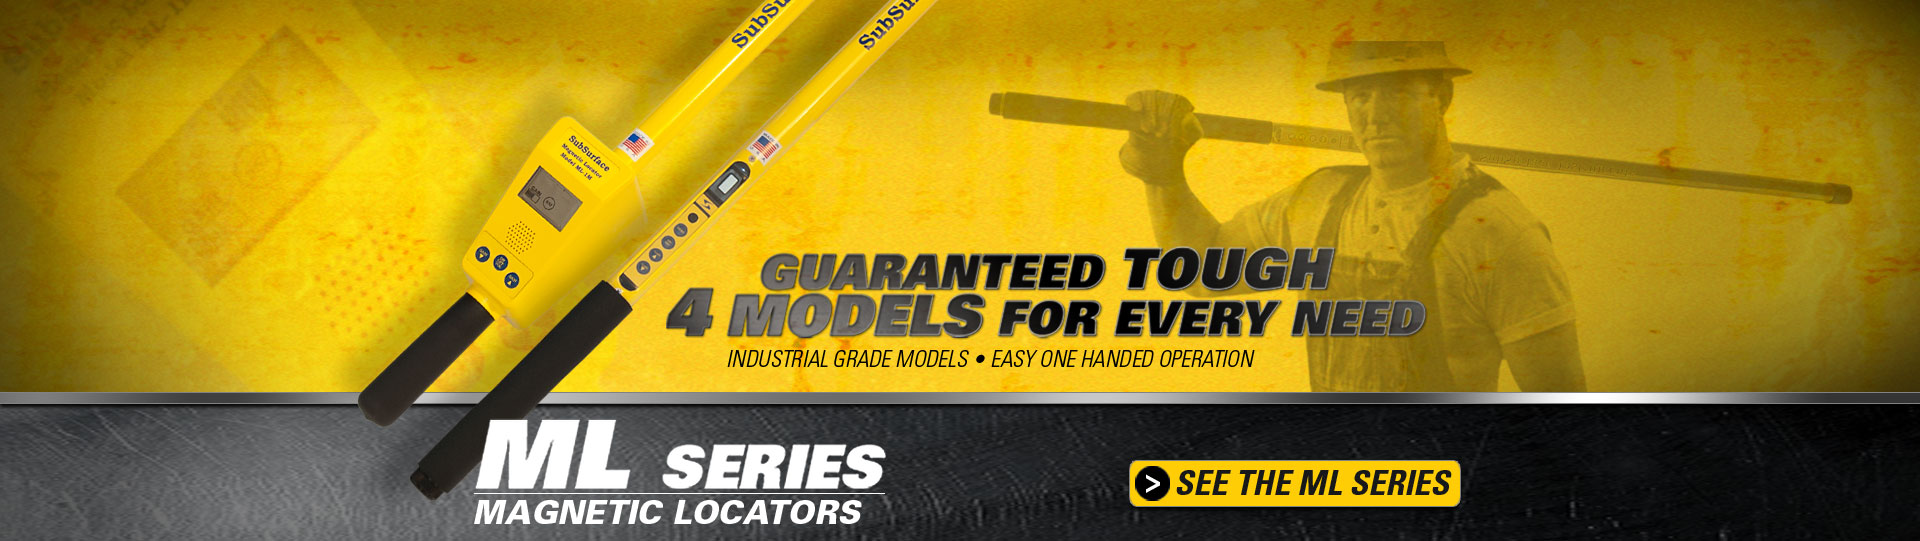 SubSurface Instruments ML (Magnetic Locators) Series - Guaranteed Tough, 4 Models for Every Need